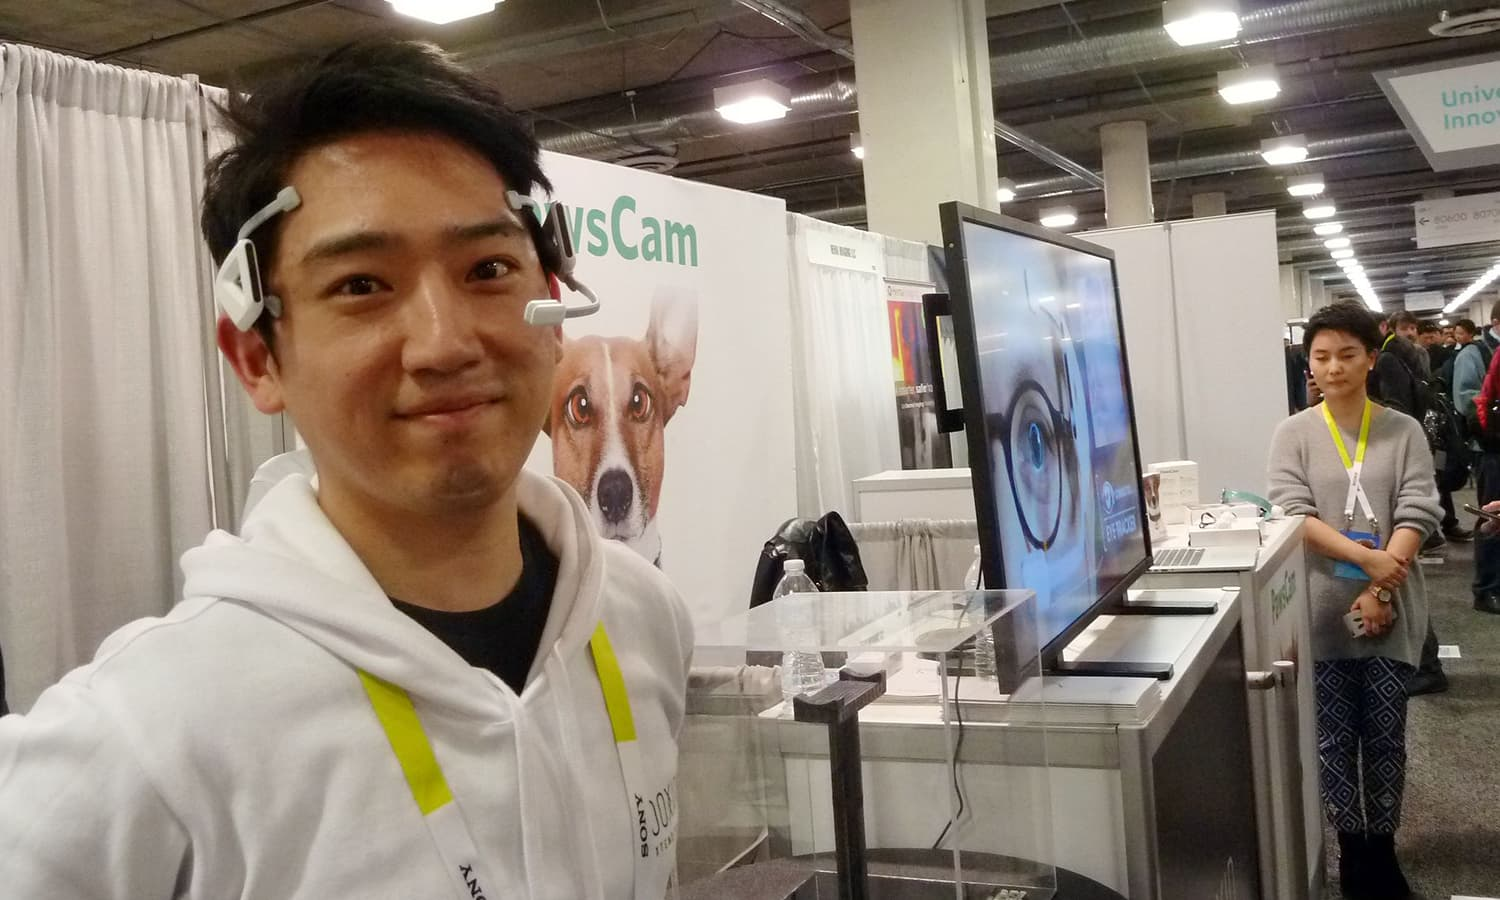 Alex Chang of Looxid Labs demonstrates a brainwave headset at the Consumer Electronics Show. A new breed of neuro-hackers is finding new ways to capture and manipulate brainwaves for improved health, with potential to help the severely handicapped. ─ AFP